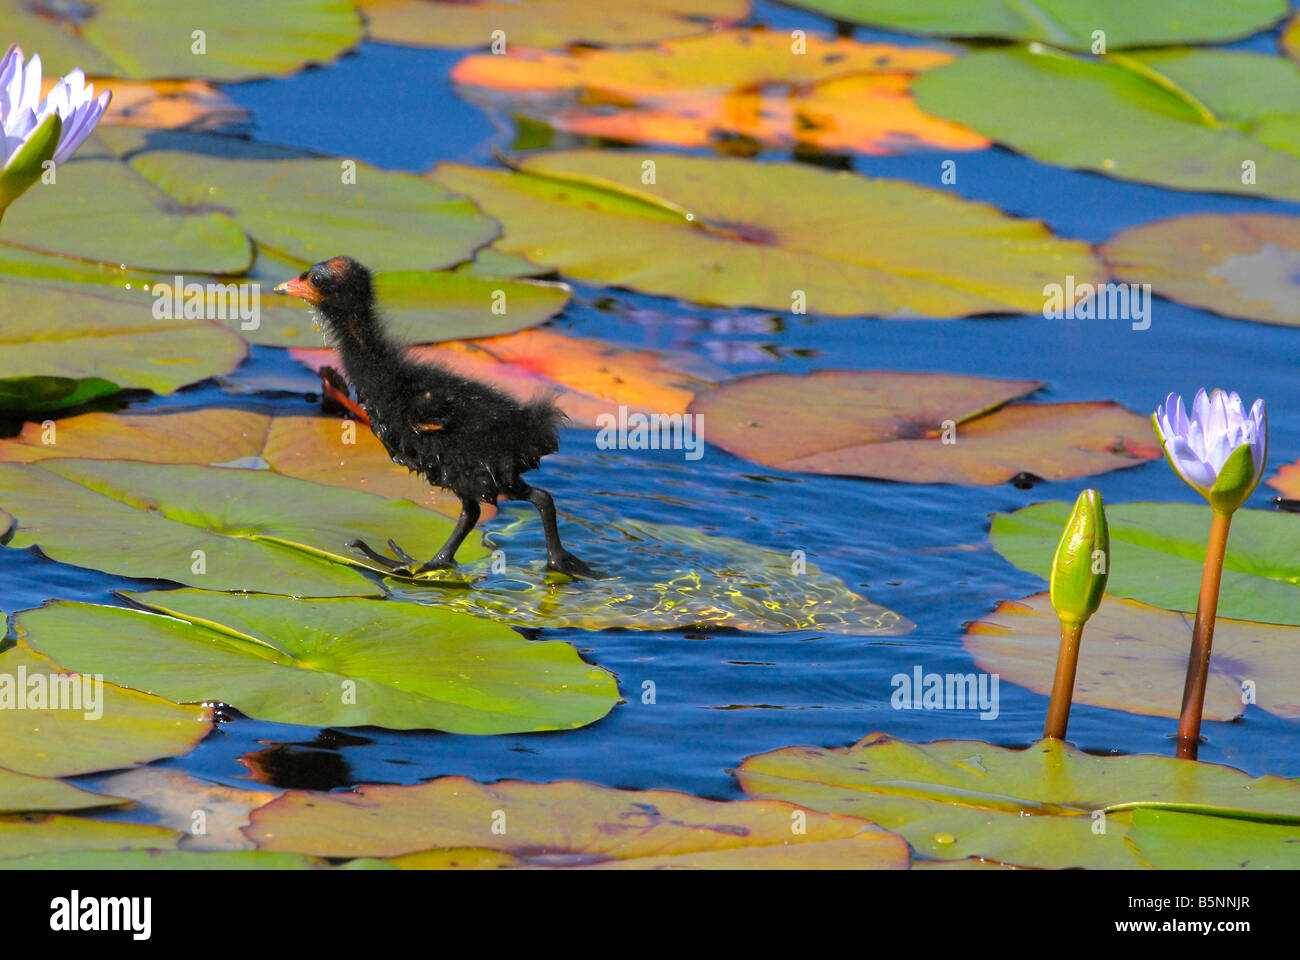 Lily Pad Baby Stock Photos & Lily Pad Baby Stock Images - Alamy